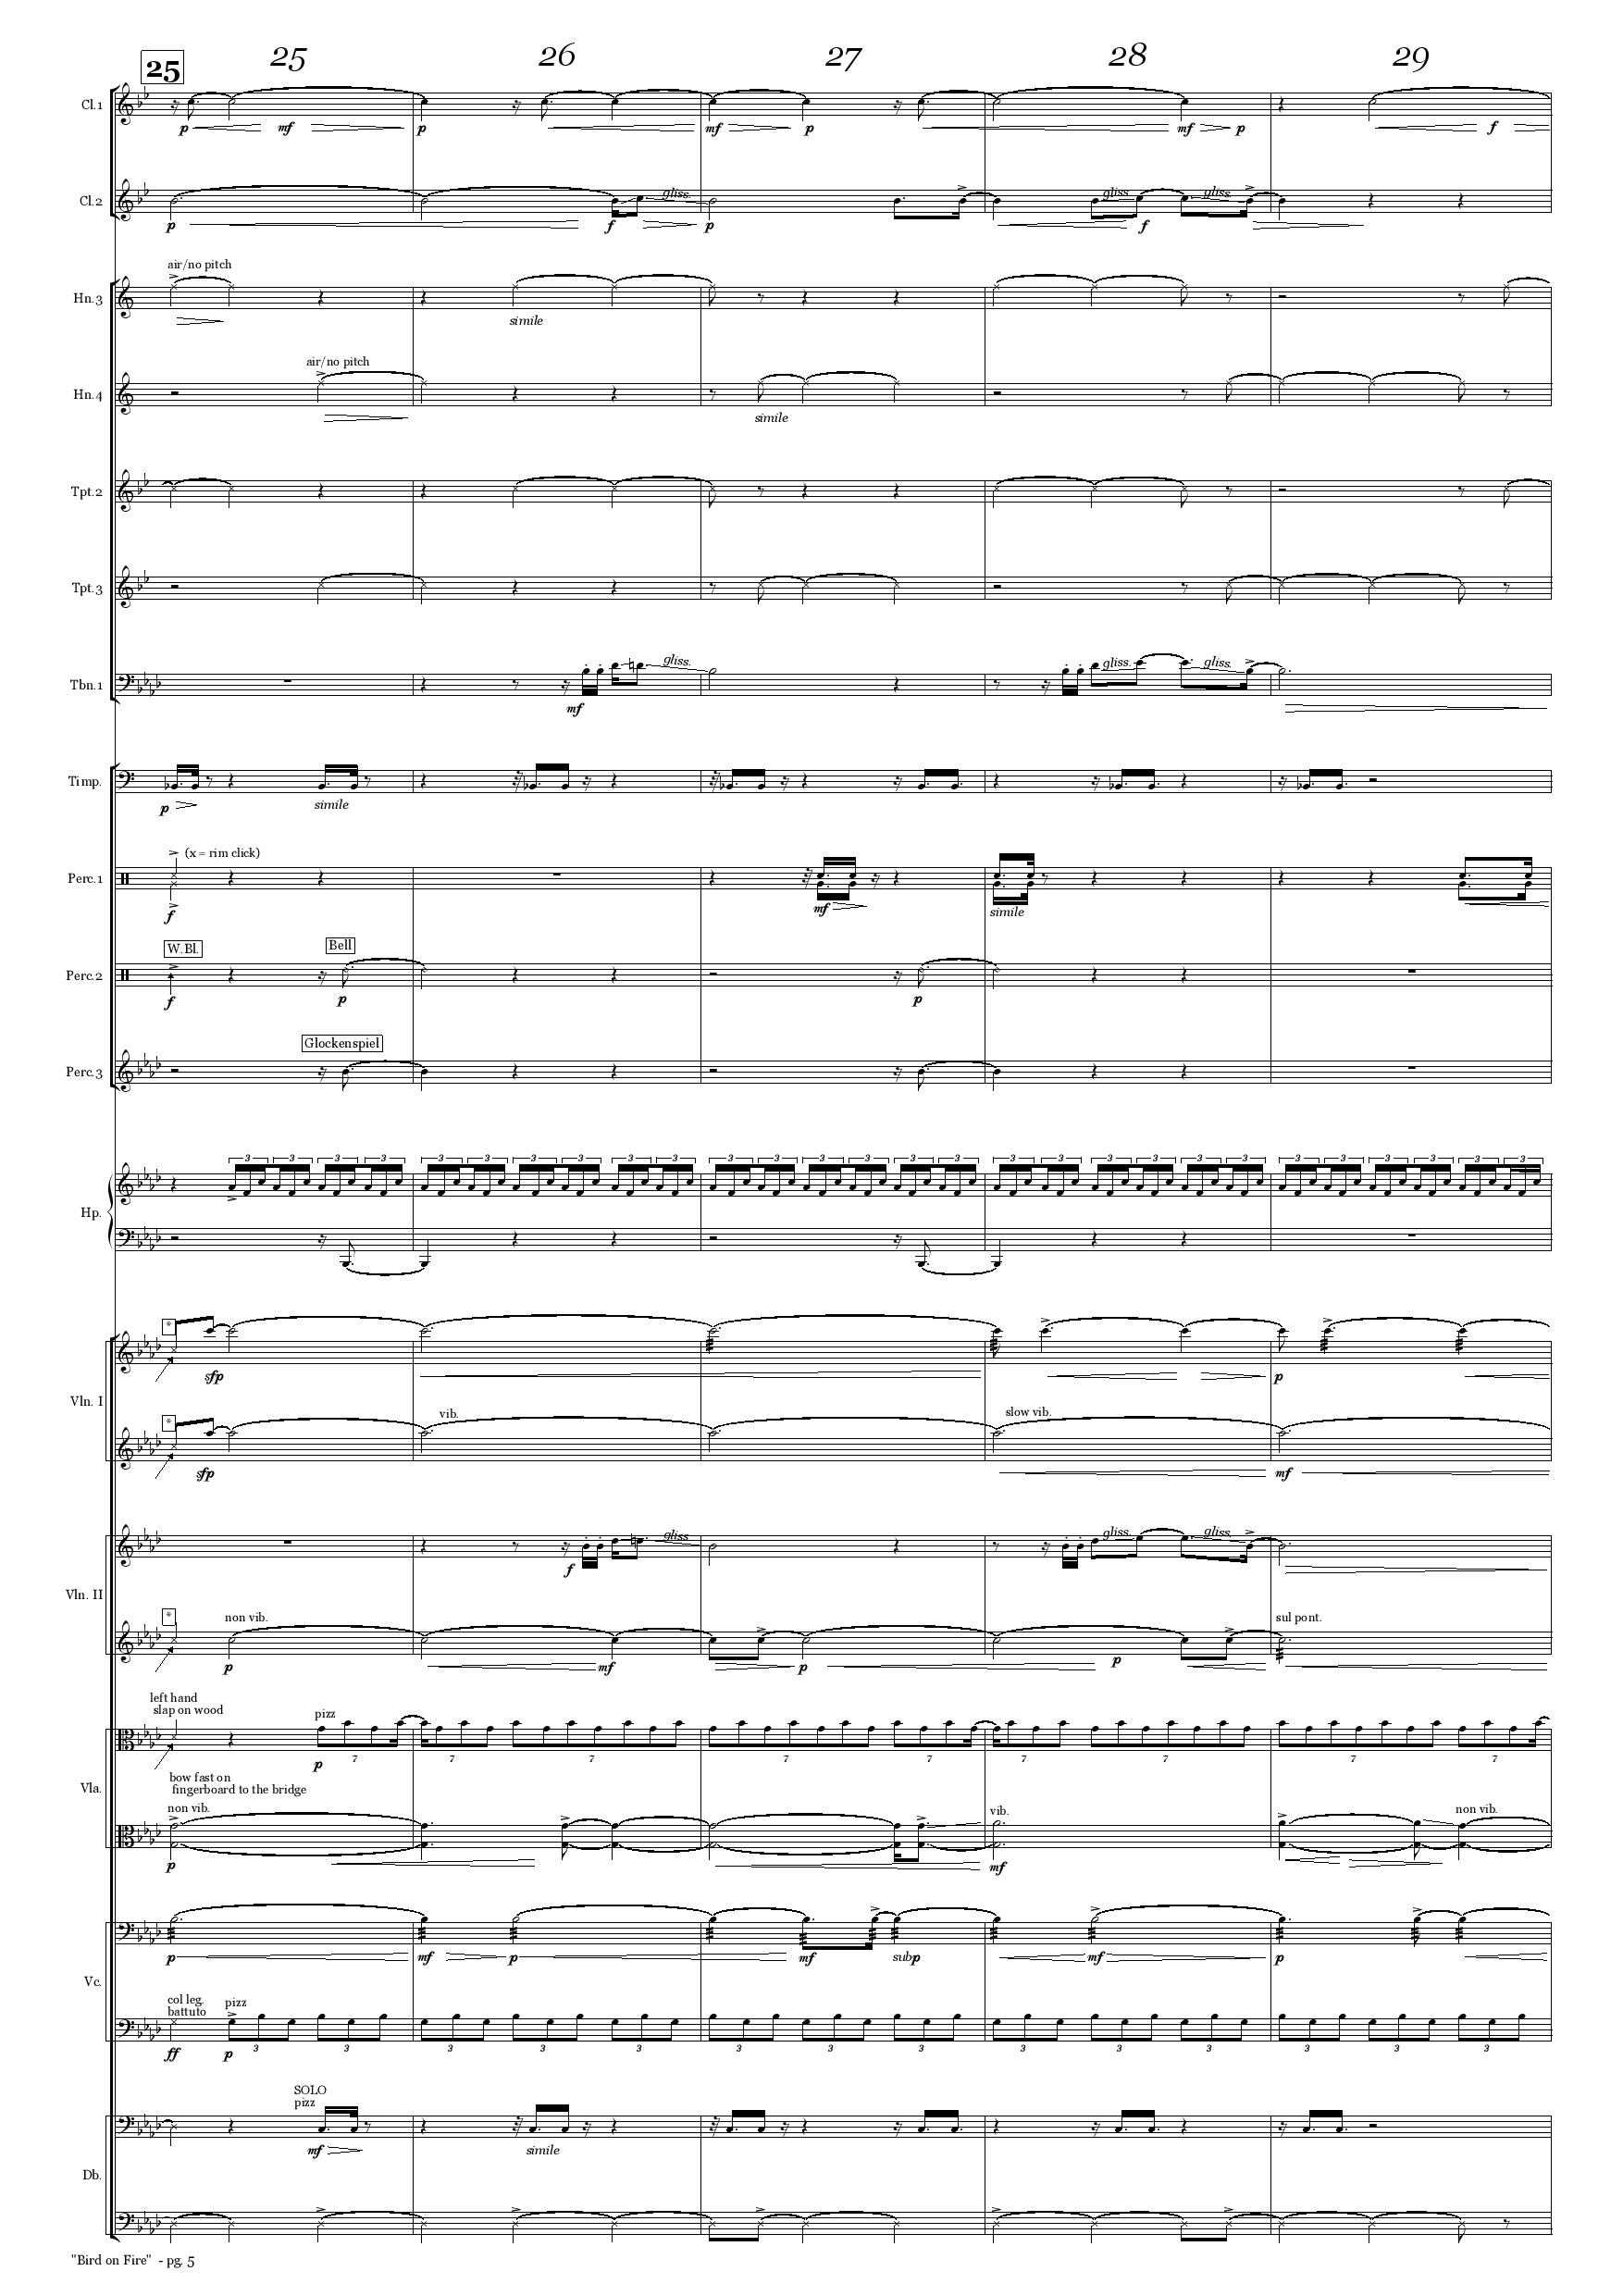 Bird on Fire - score-page-008.jpg